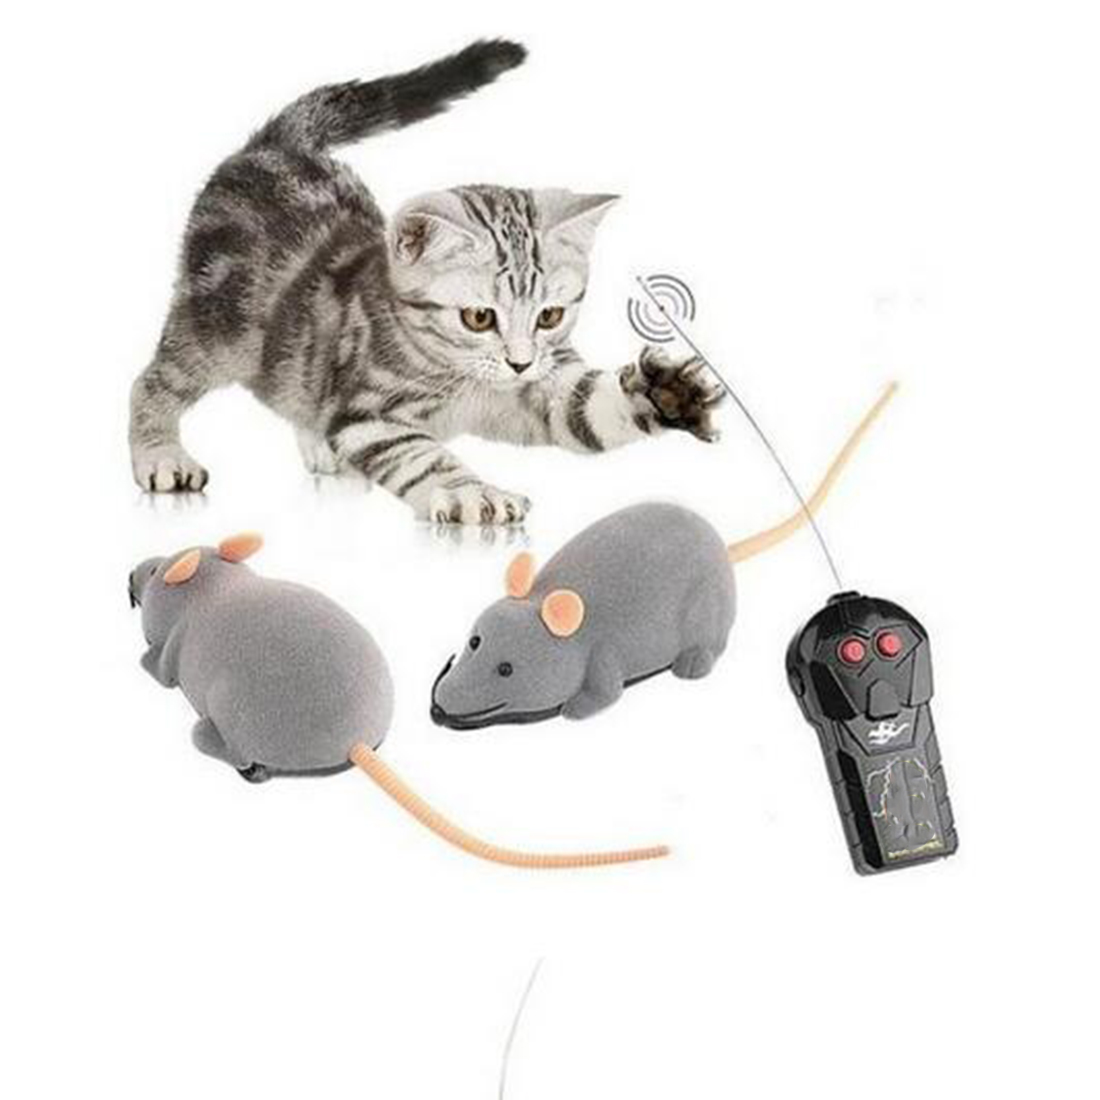 2016 New Funny Cat Dog Toys Remote Control Simulation Mouse Kids Toys Ears Random Color(China (Mainland))